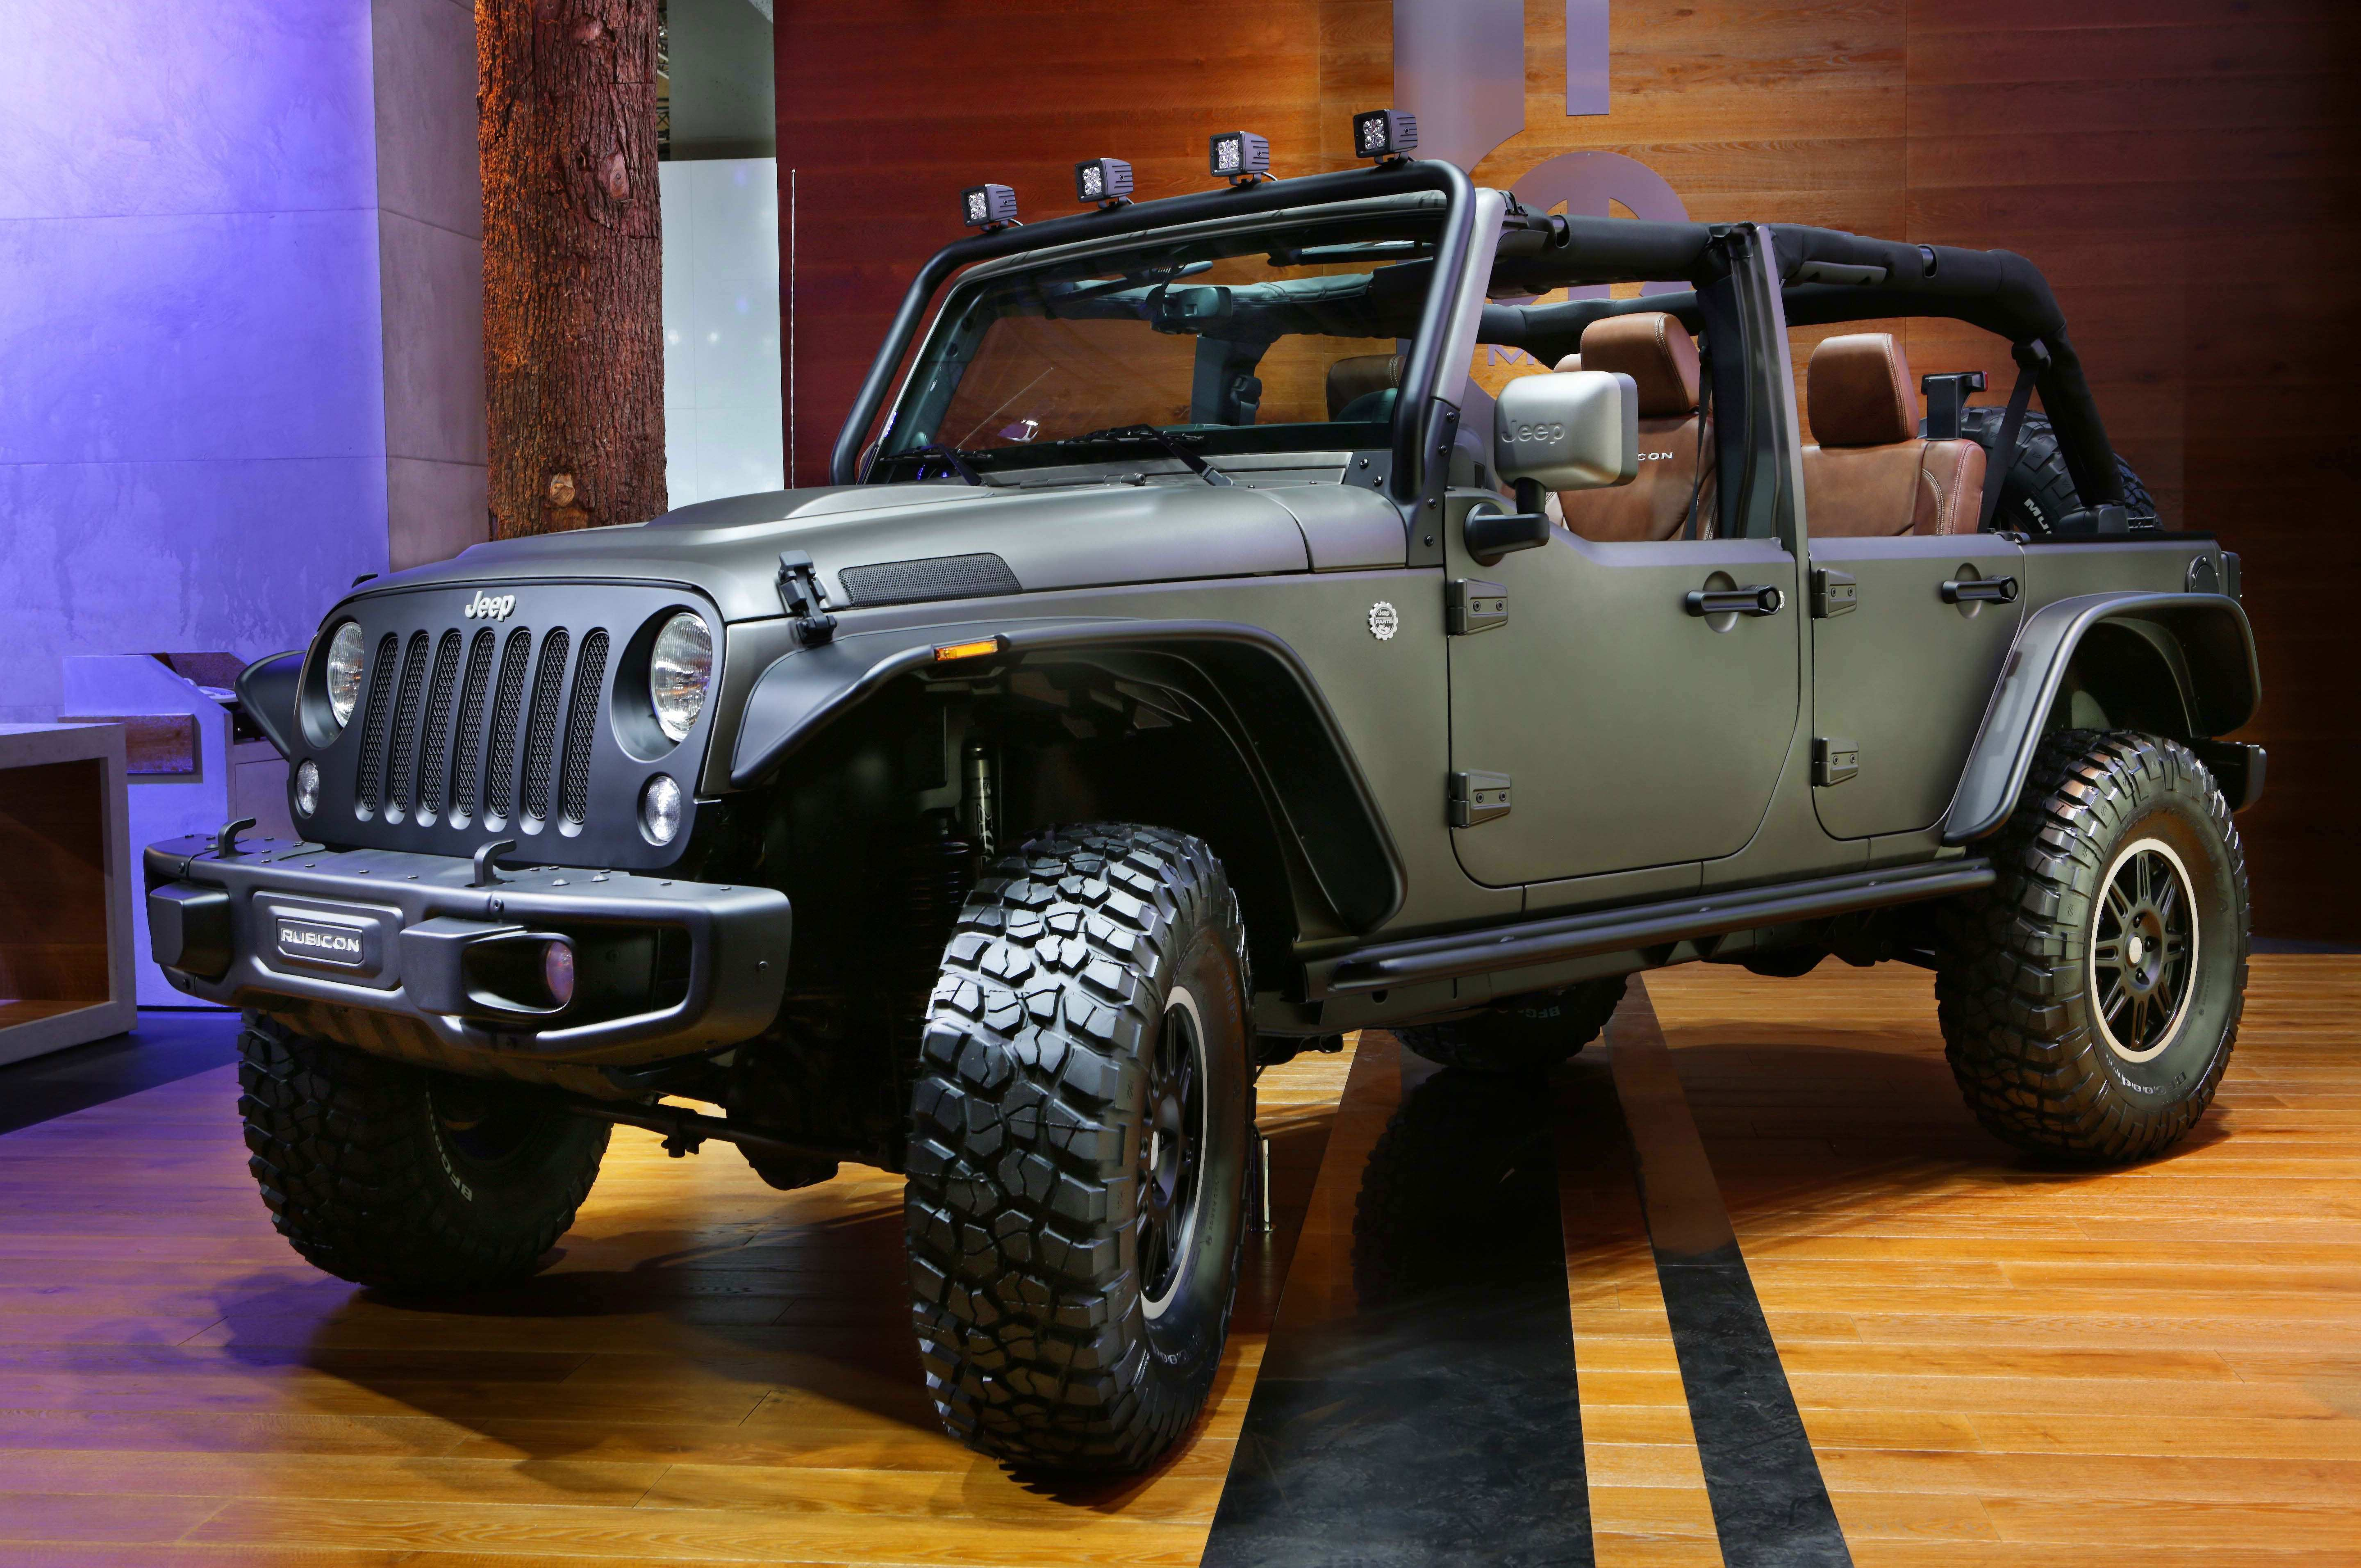 51 Great Best 2019 Jeep Unlimited Colors Price Release with Best 2019 Jeep Unlimited Colors Price